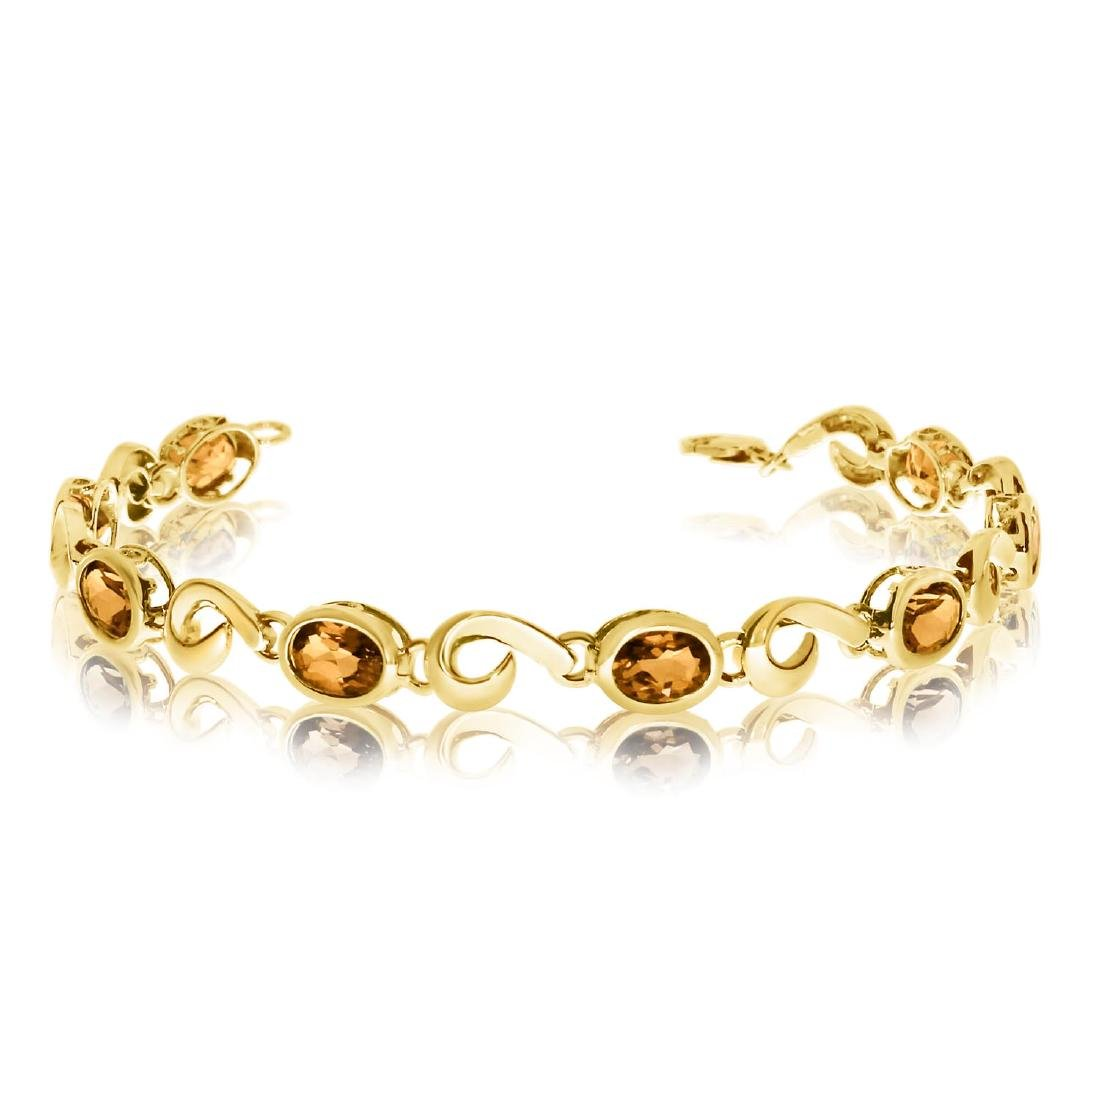 Certified 14K Yellow Gold Oval Citrine Bracelet 5.12 CT